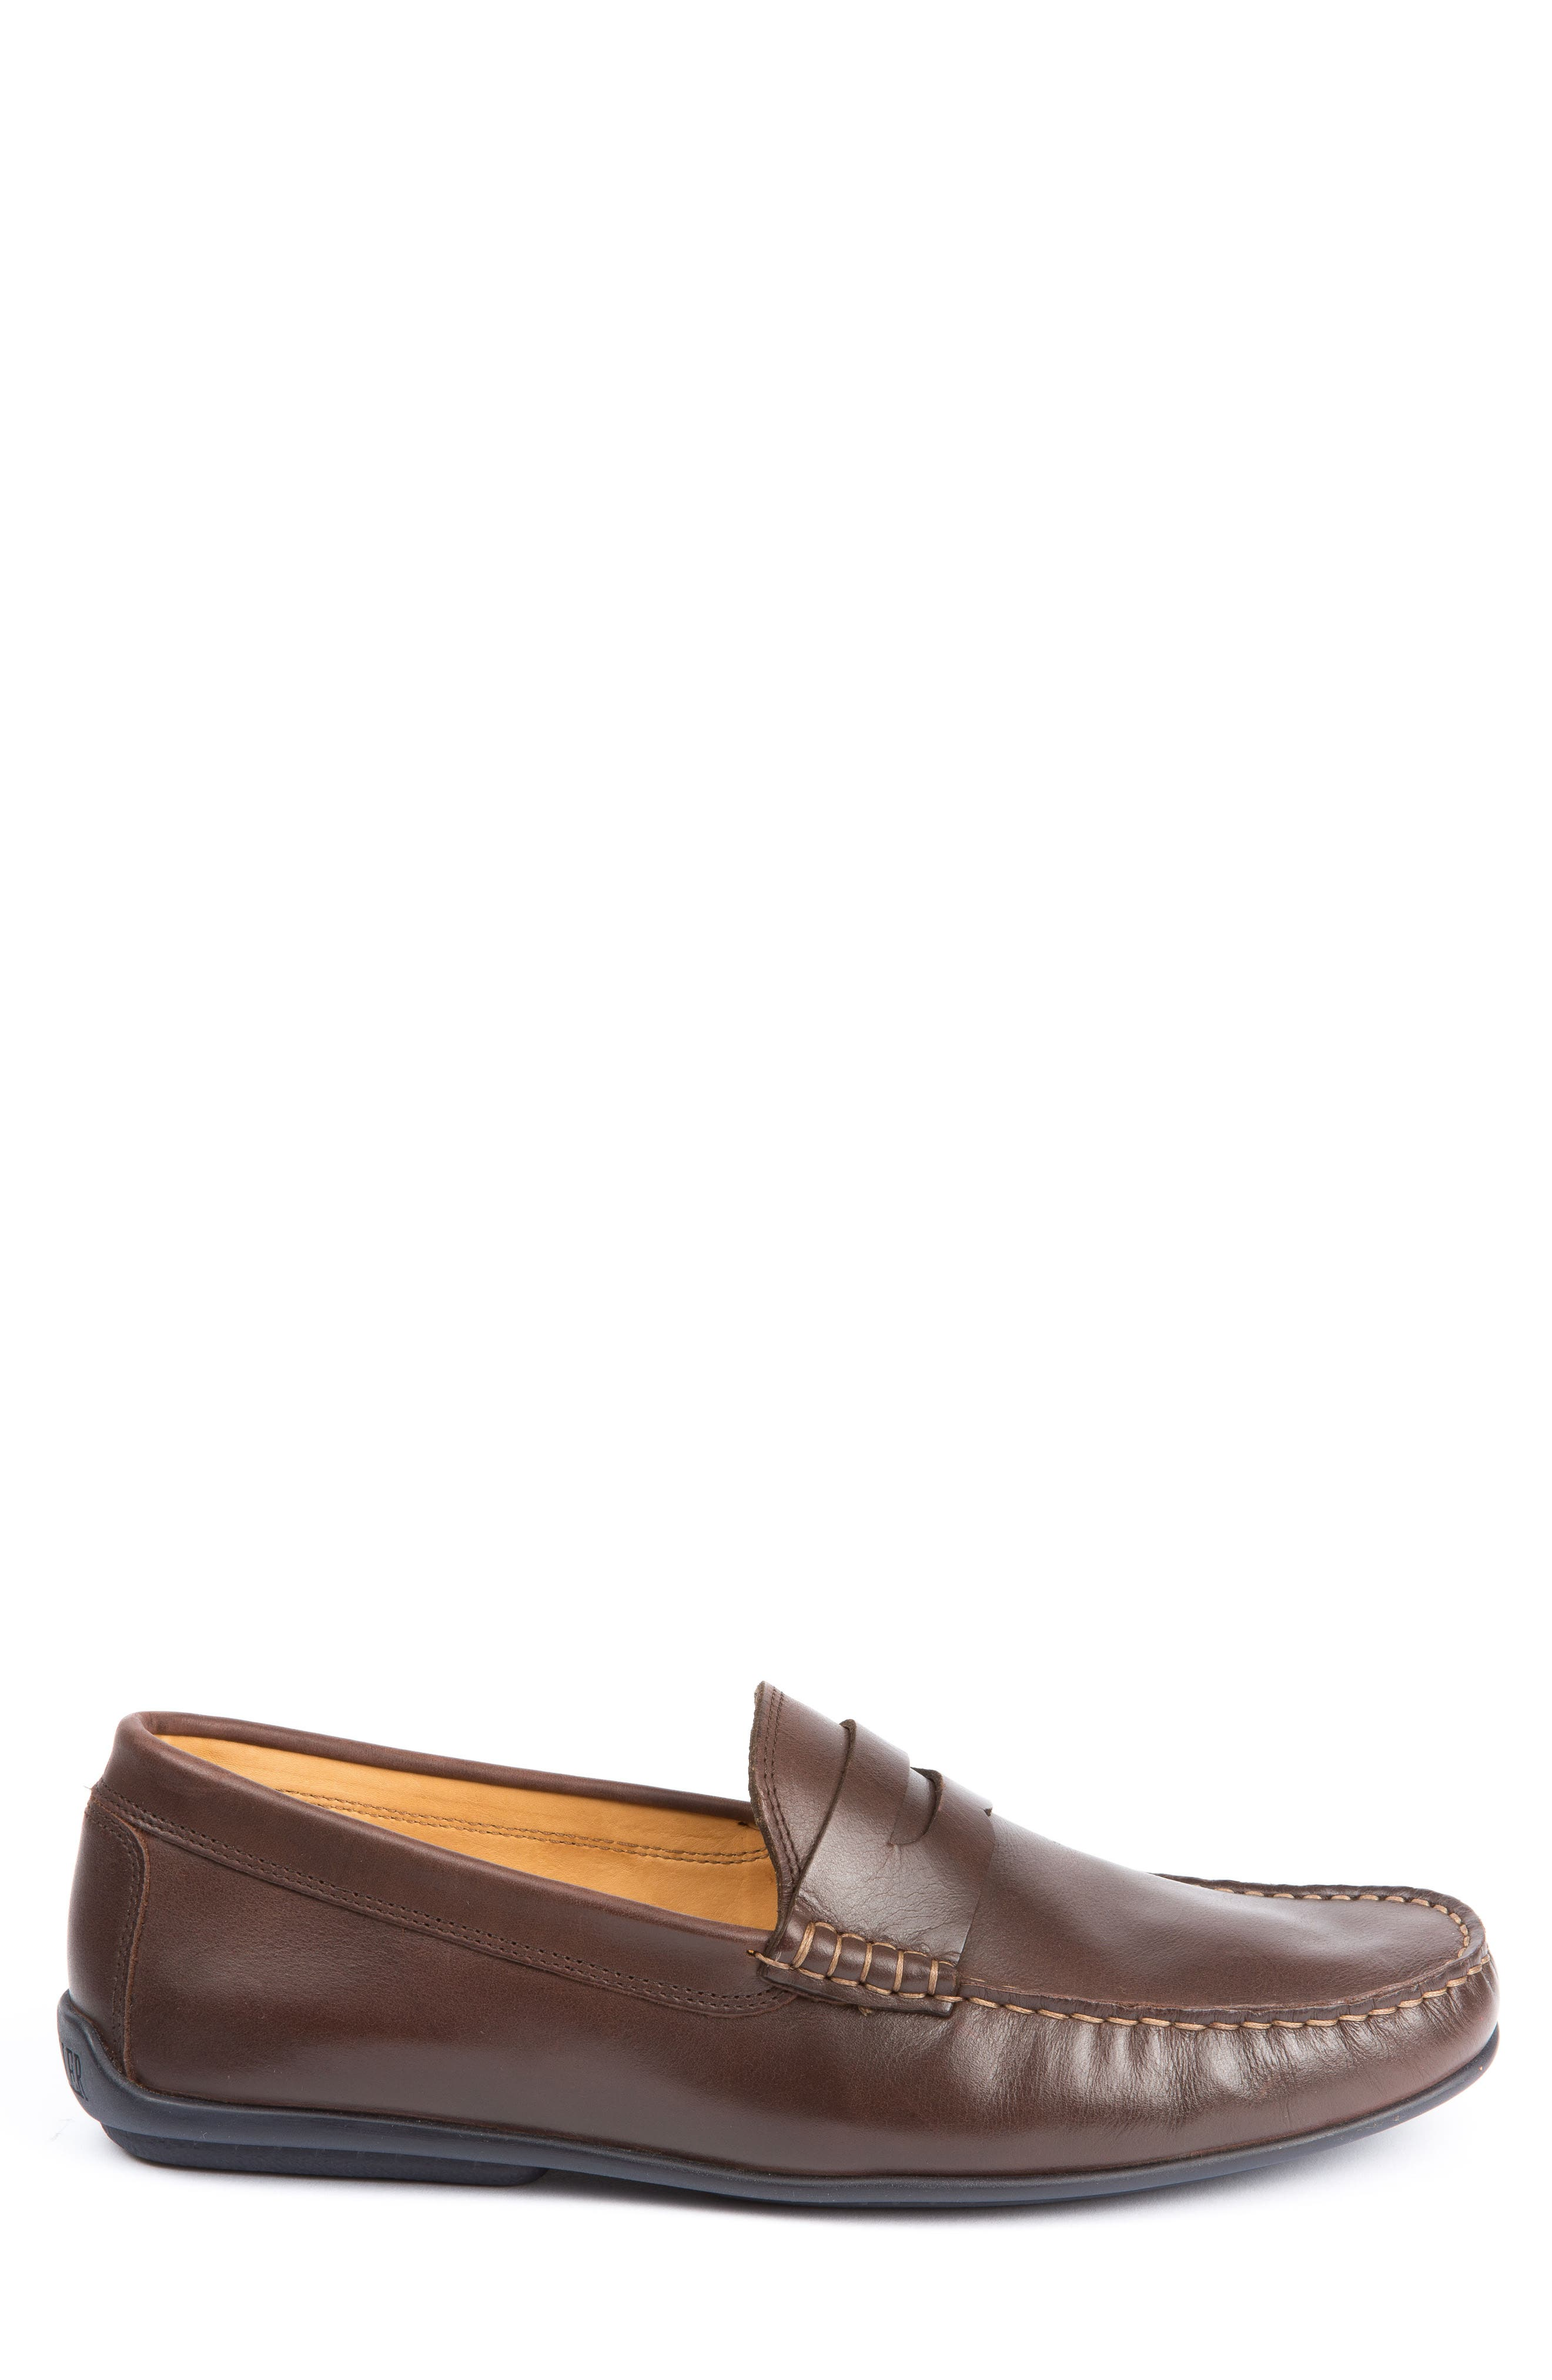 'Strattons' Driving Shoe,                             Alternate thumbnail 3, color,                             BROWN LEATHER/ NAVY